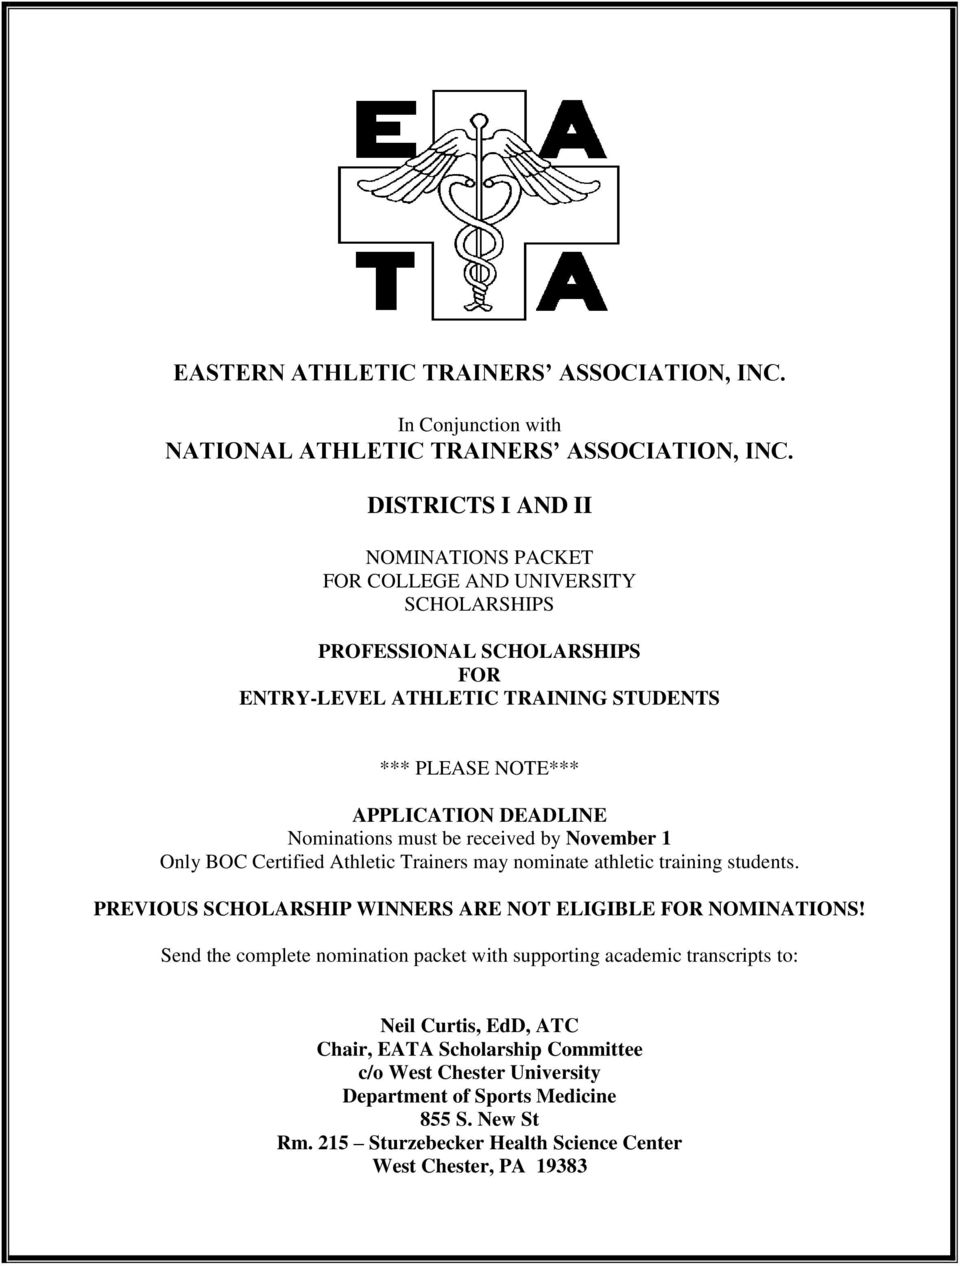 Nominations must be received by November 1 Only BOC Certified Athletic Trainers may nominate athletic training students. PREVIOUS SCHOLARSHIP WINNERS ARE NOT ELIGIBLE FOR NOMINATIONS!